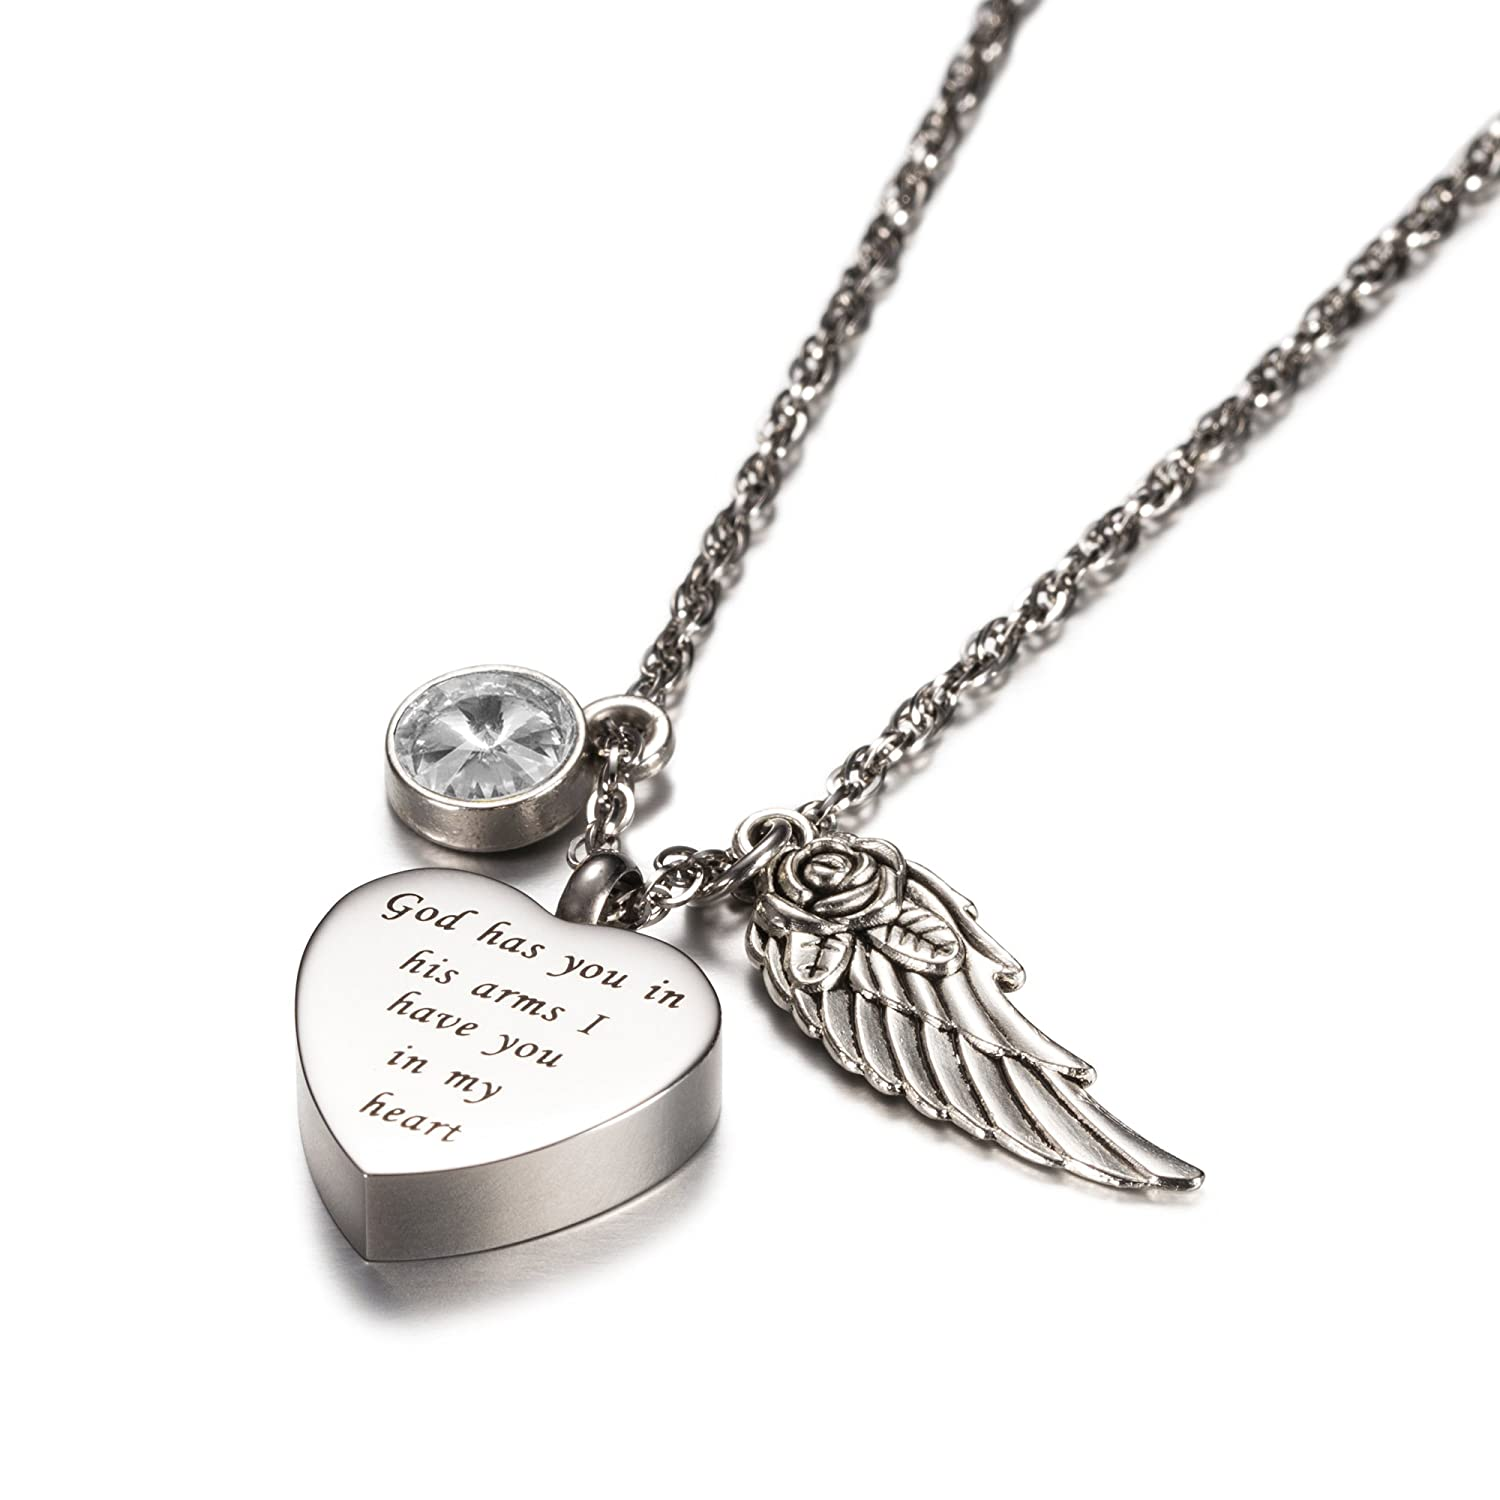 memorial shop pendant ash charm australia angel wings letter necklace jewellery with by original keepsake online locket in urn cremation for